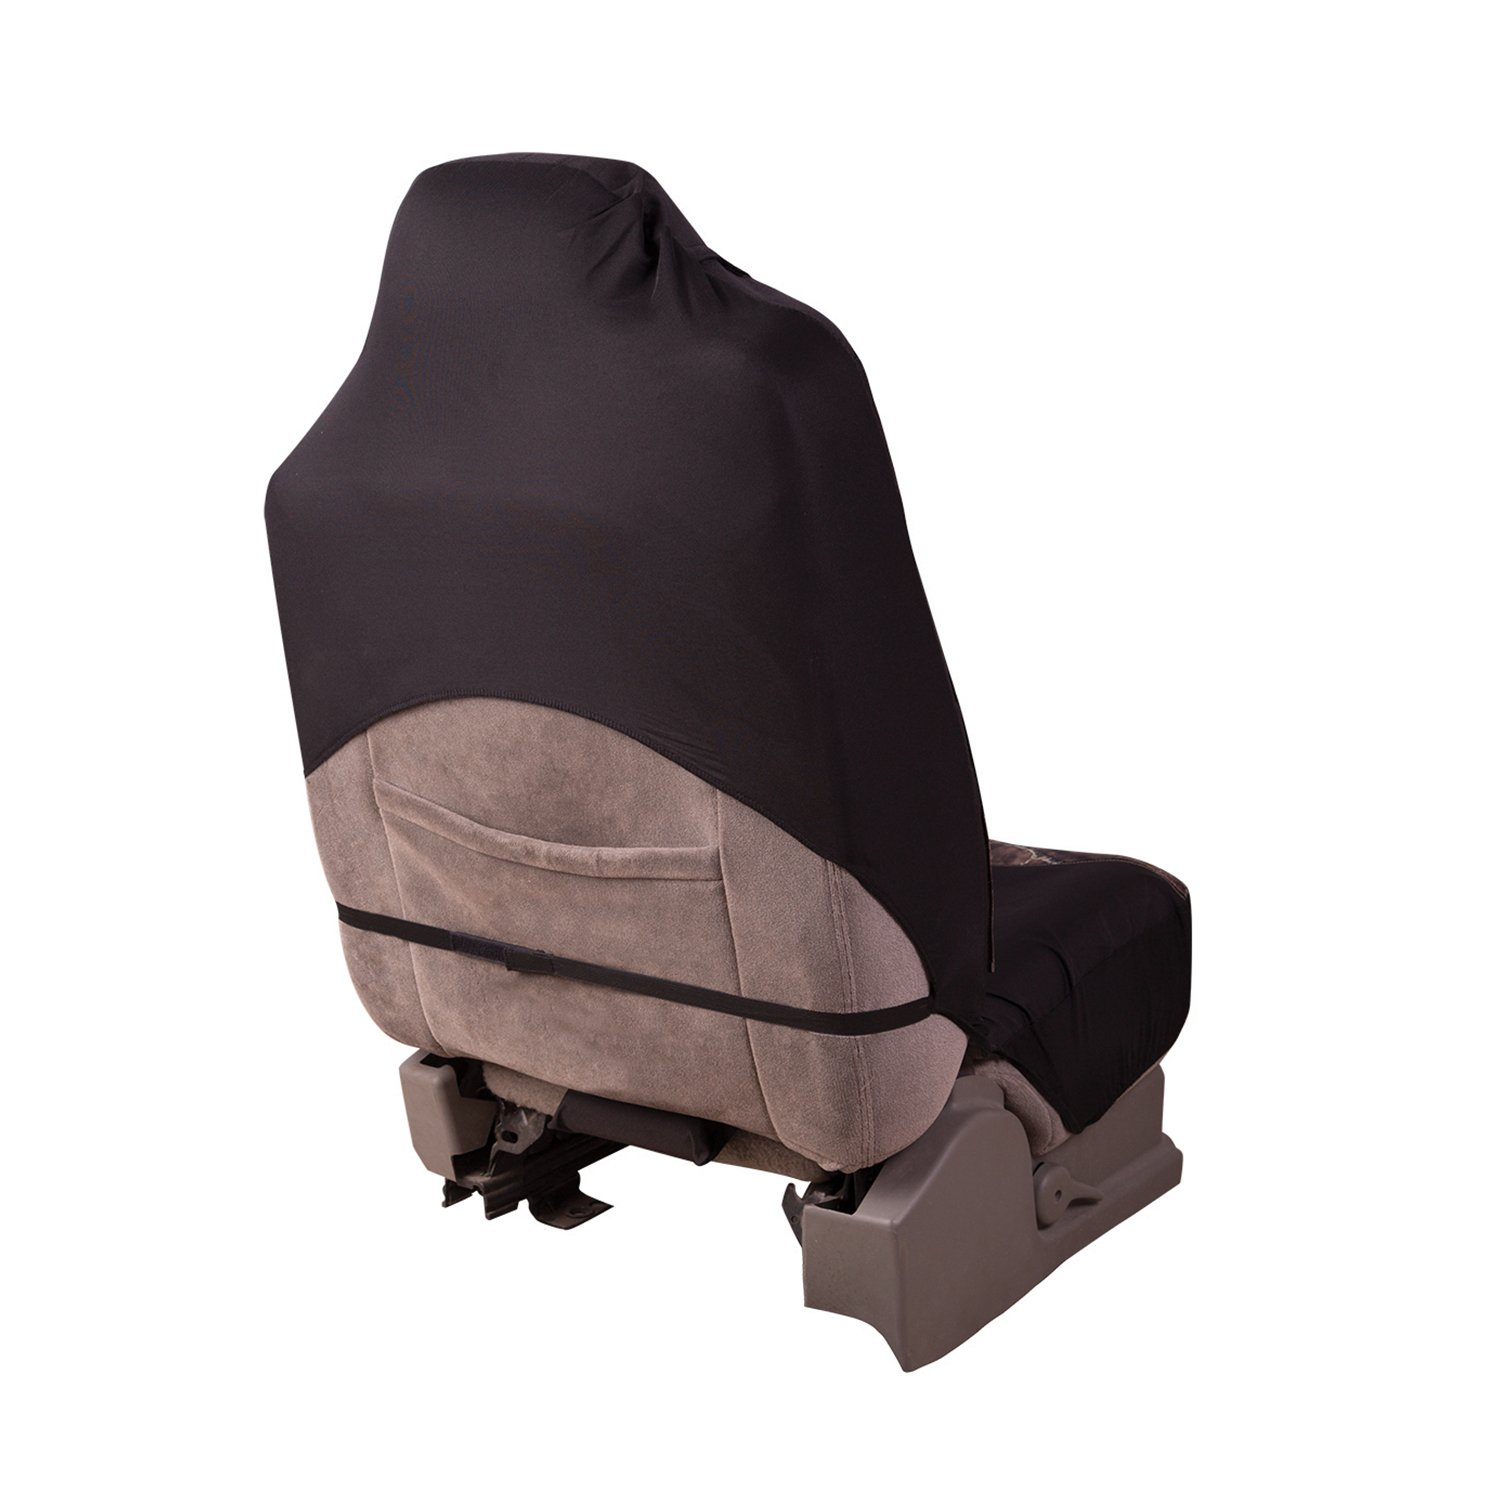 BROWNING BSC4401 UNIVERSAL SEAT COVER DESIGN MONBU RW33C-BSC4401*A